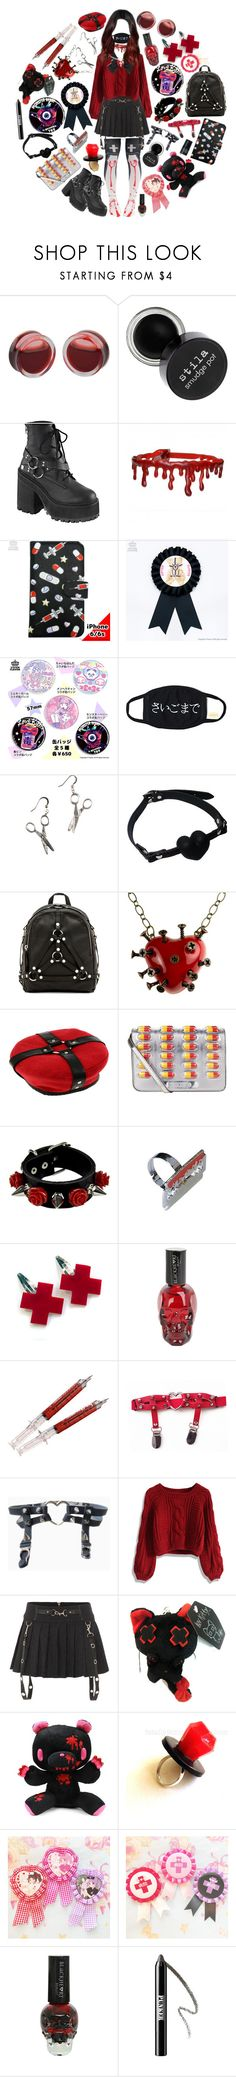 """On the dark side of Menhera"" by sw-13 ❤ liked on Polyvore featuring Demonia, Girly Pop, UNIF, INDIE HAIR, Moschino, Hot Topic, Chicwish, Ardency Inn and Rimmel"